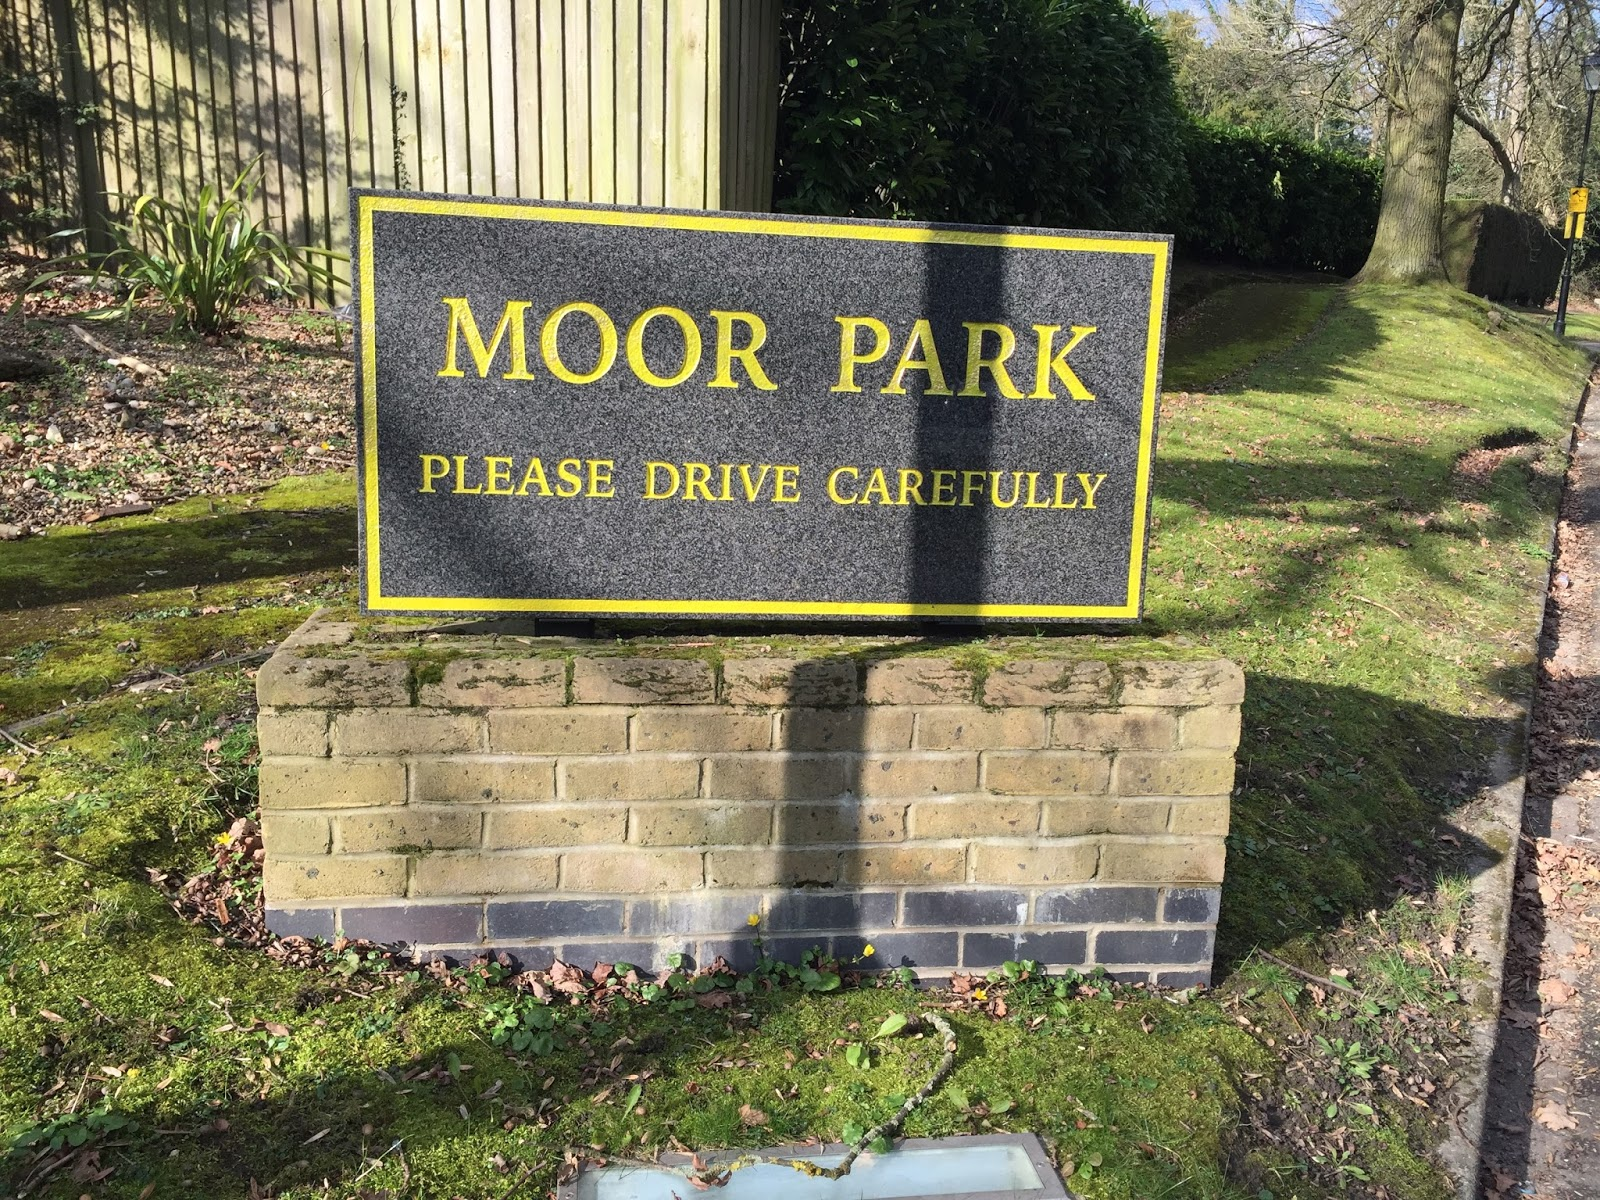 Sign for the Moor Park estate